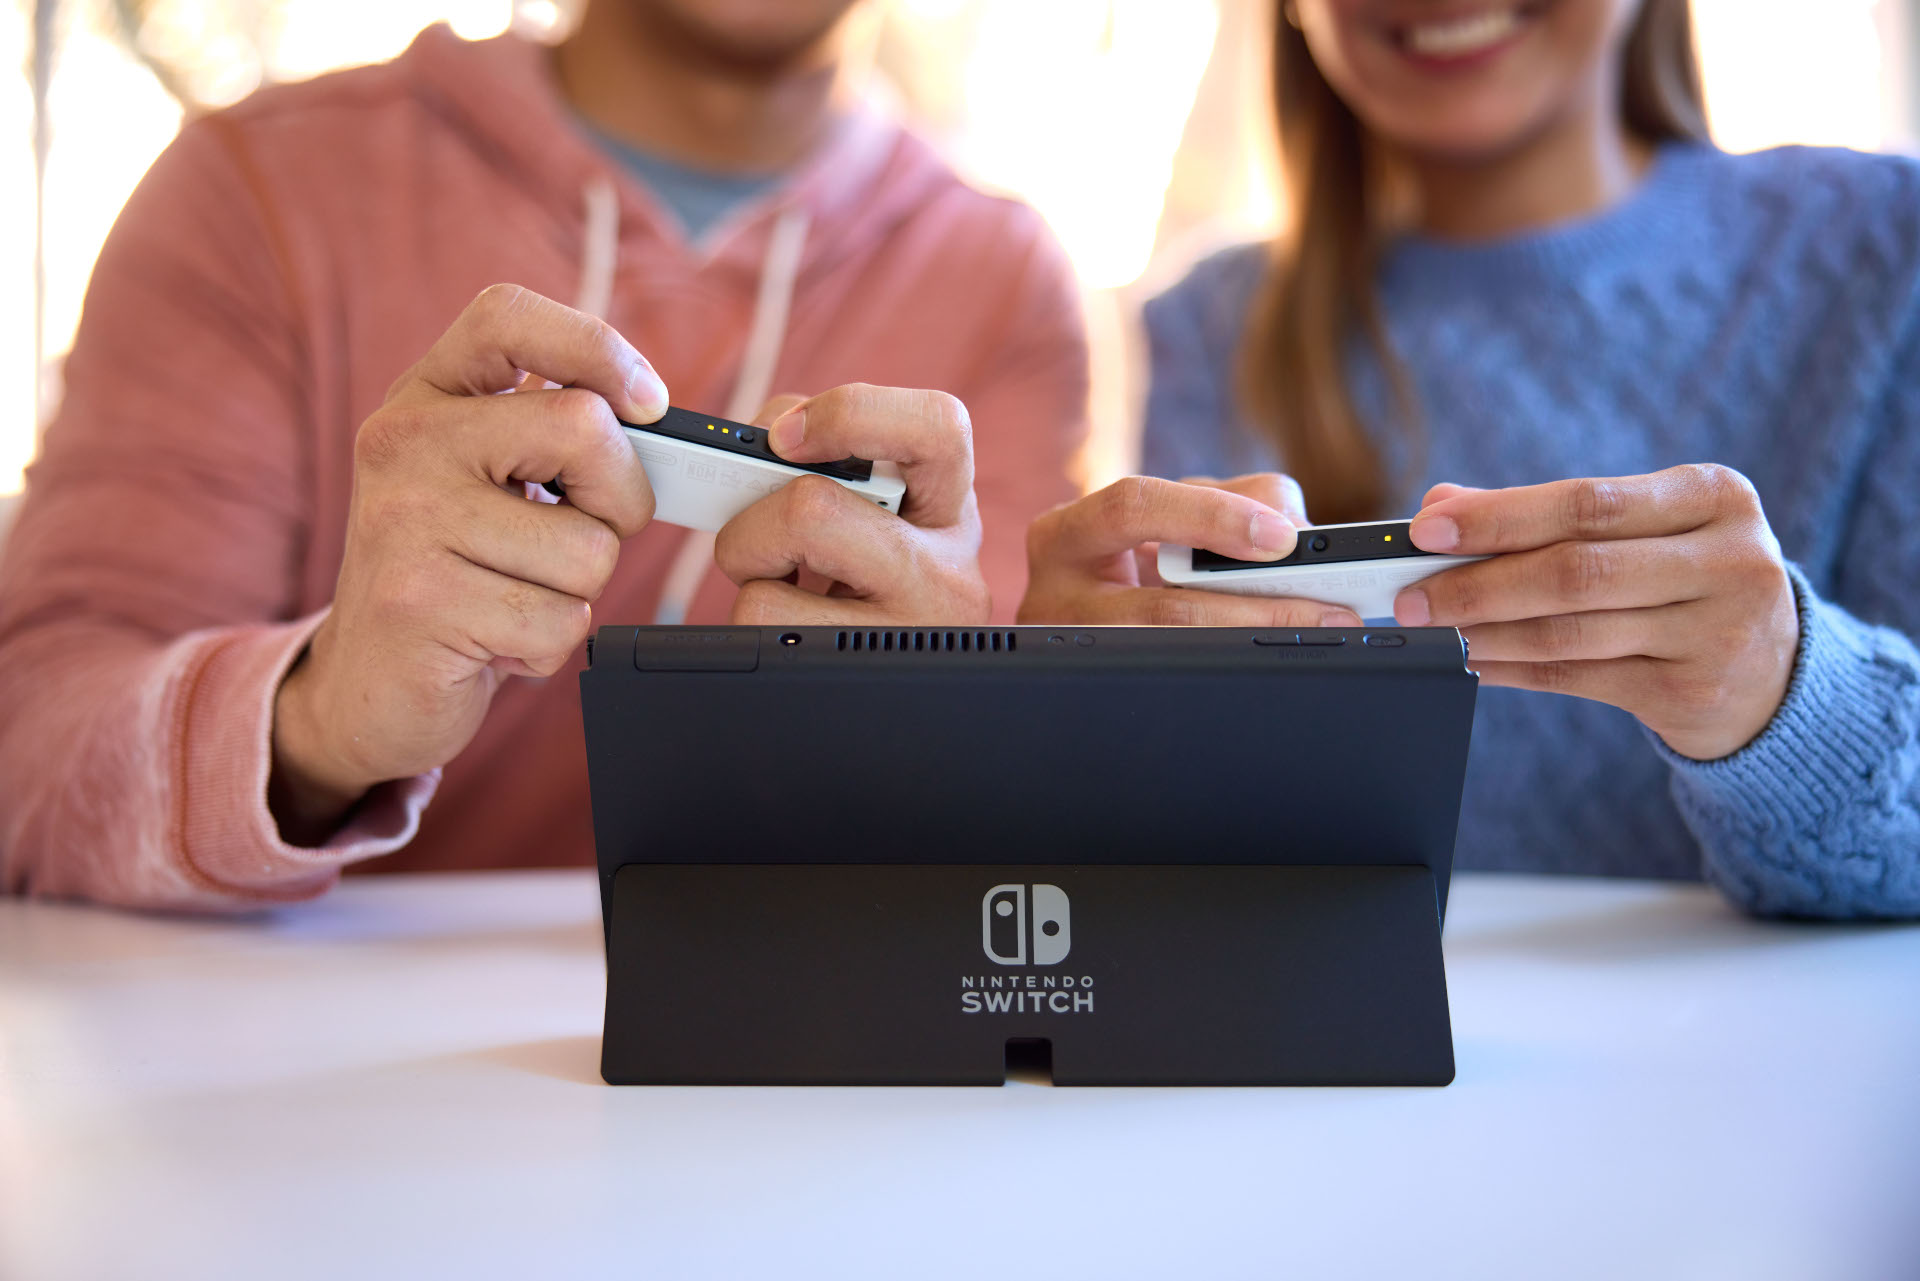 The new kickstand is a major improvement over previous Switch models.